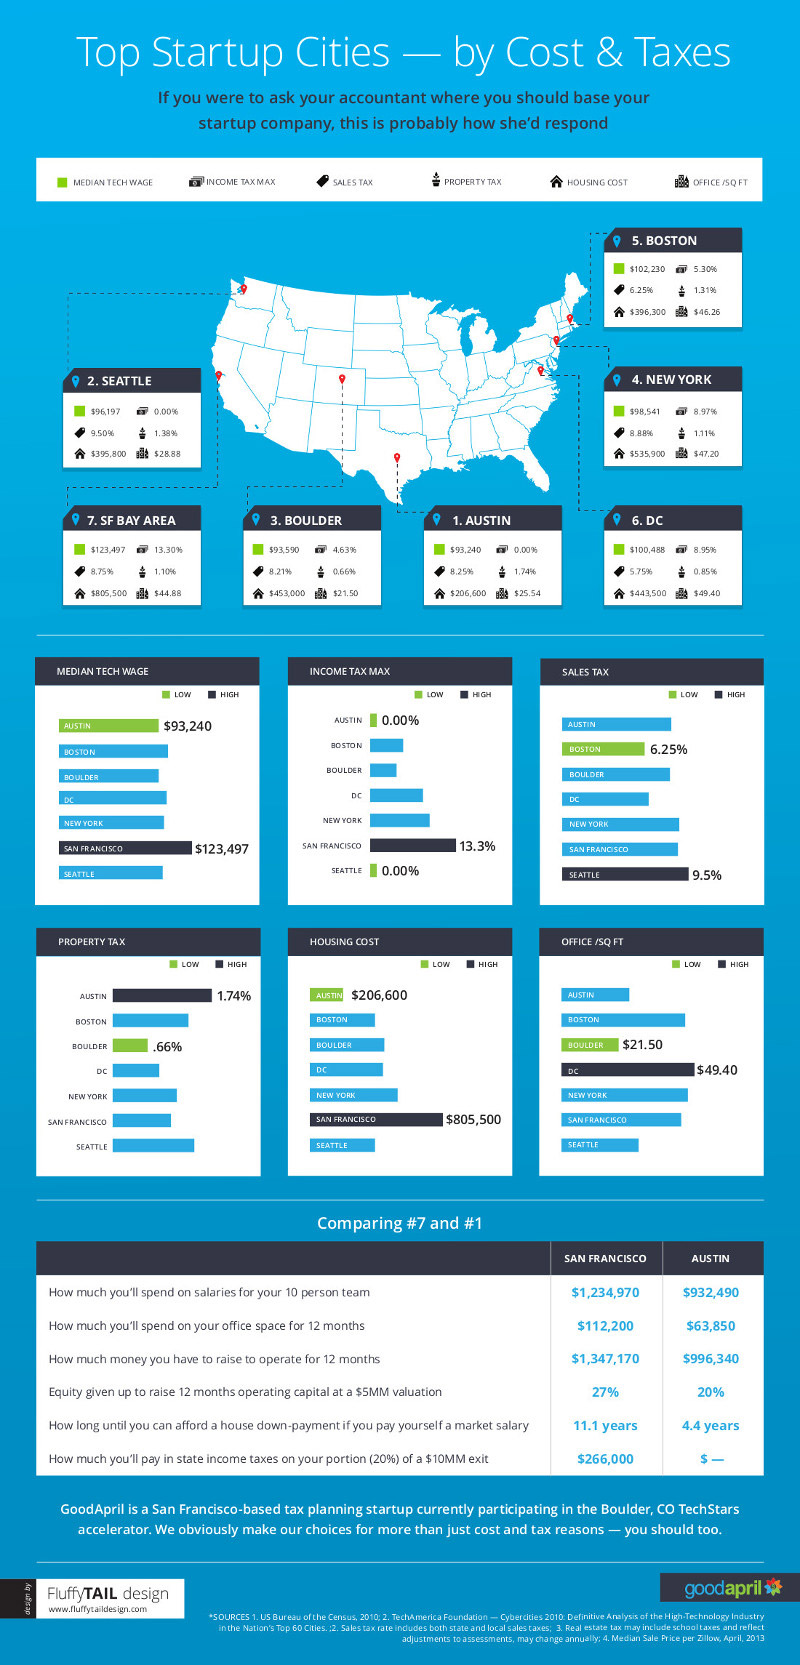 7 Top Cities for Startups [Infographic]